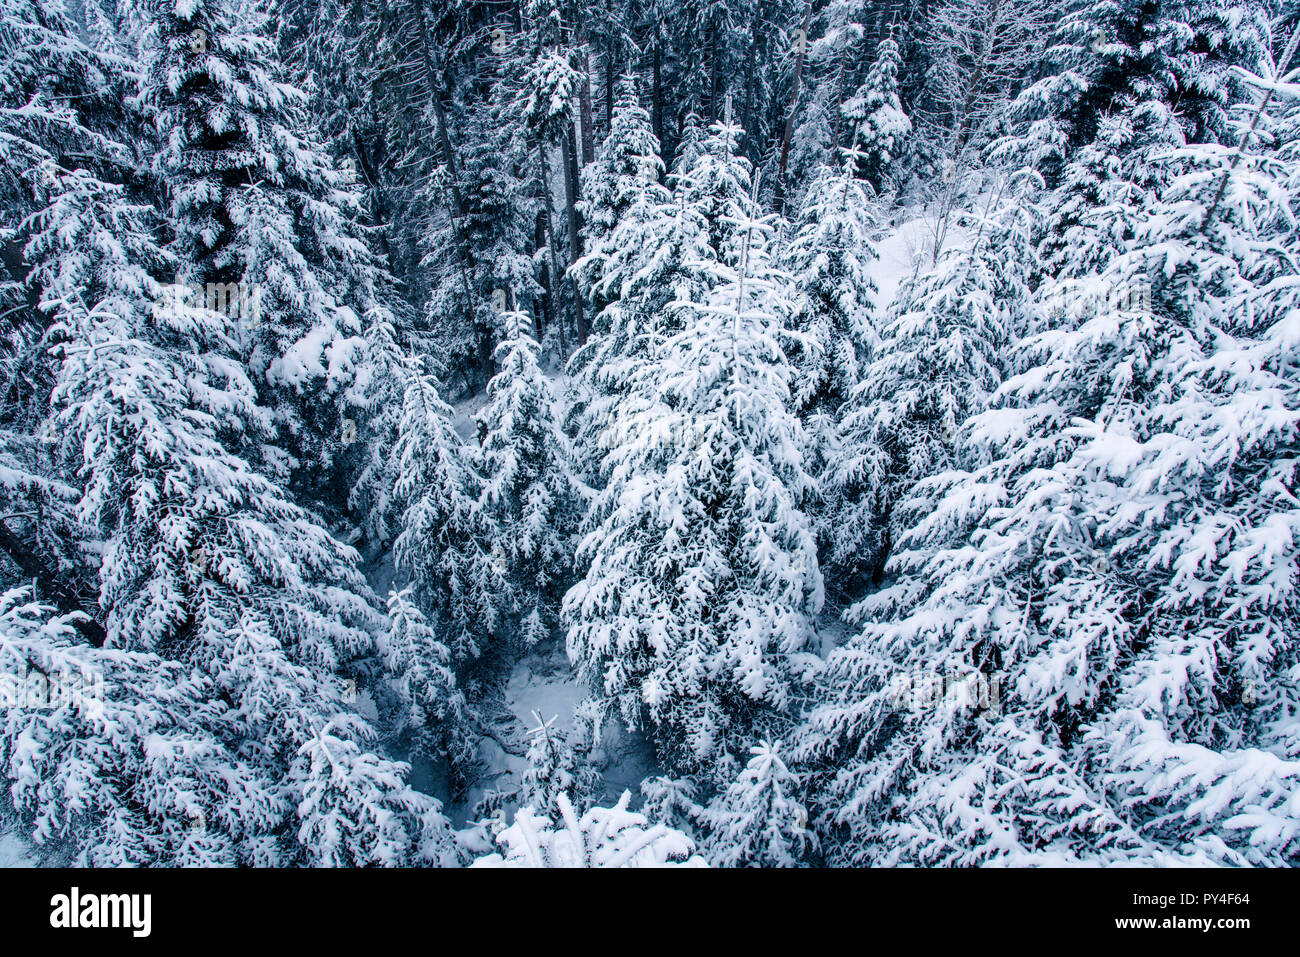 View of snow covered pine forest in Switzerland. Stock Photo